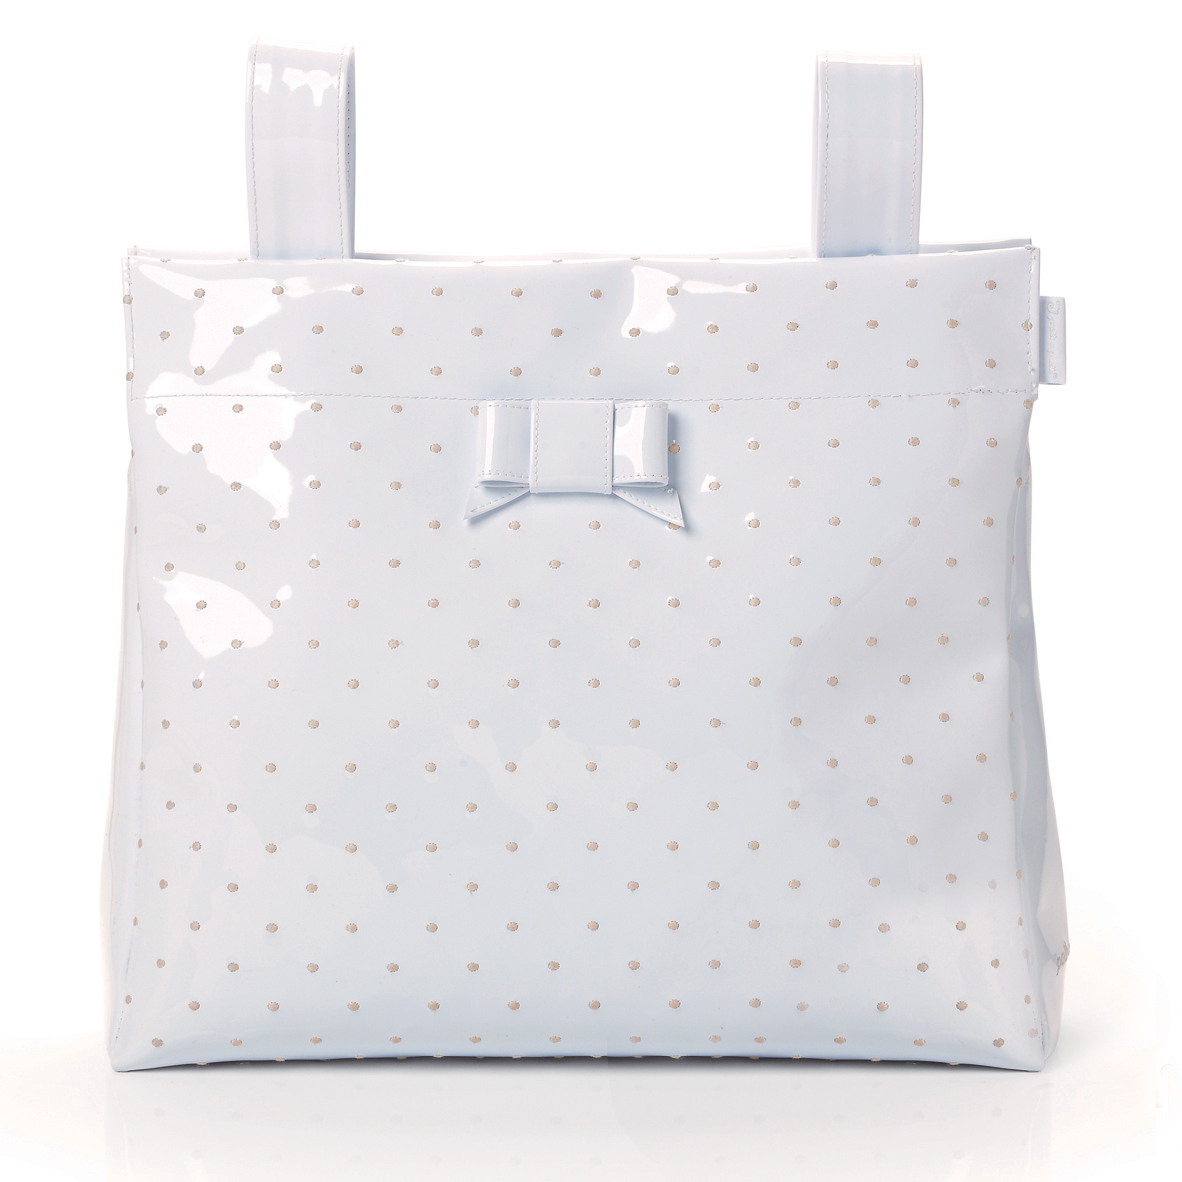 e67af6f014 PASITO A PASITO SMALL CHANGING BAG WHITE LEATHER – EMBROIDERED POLKA ...